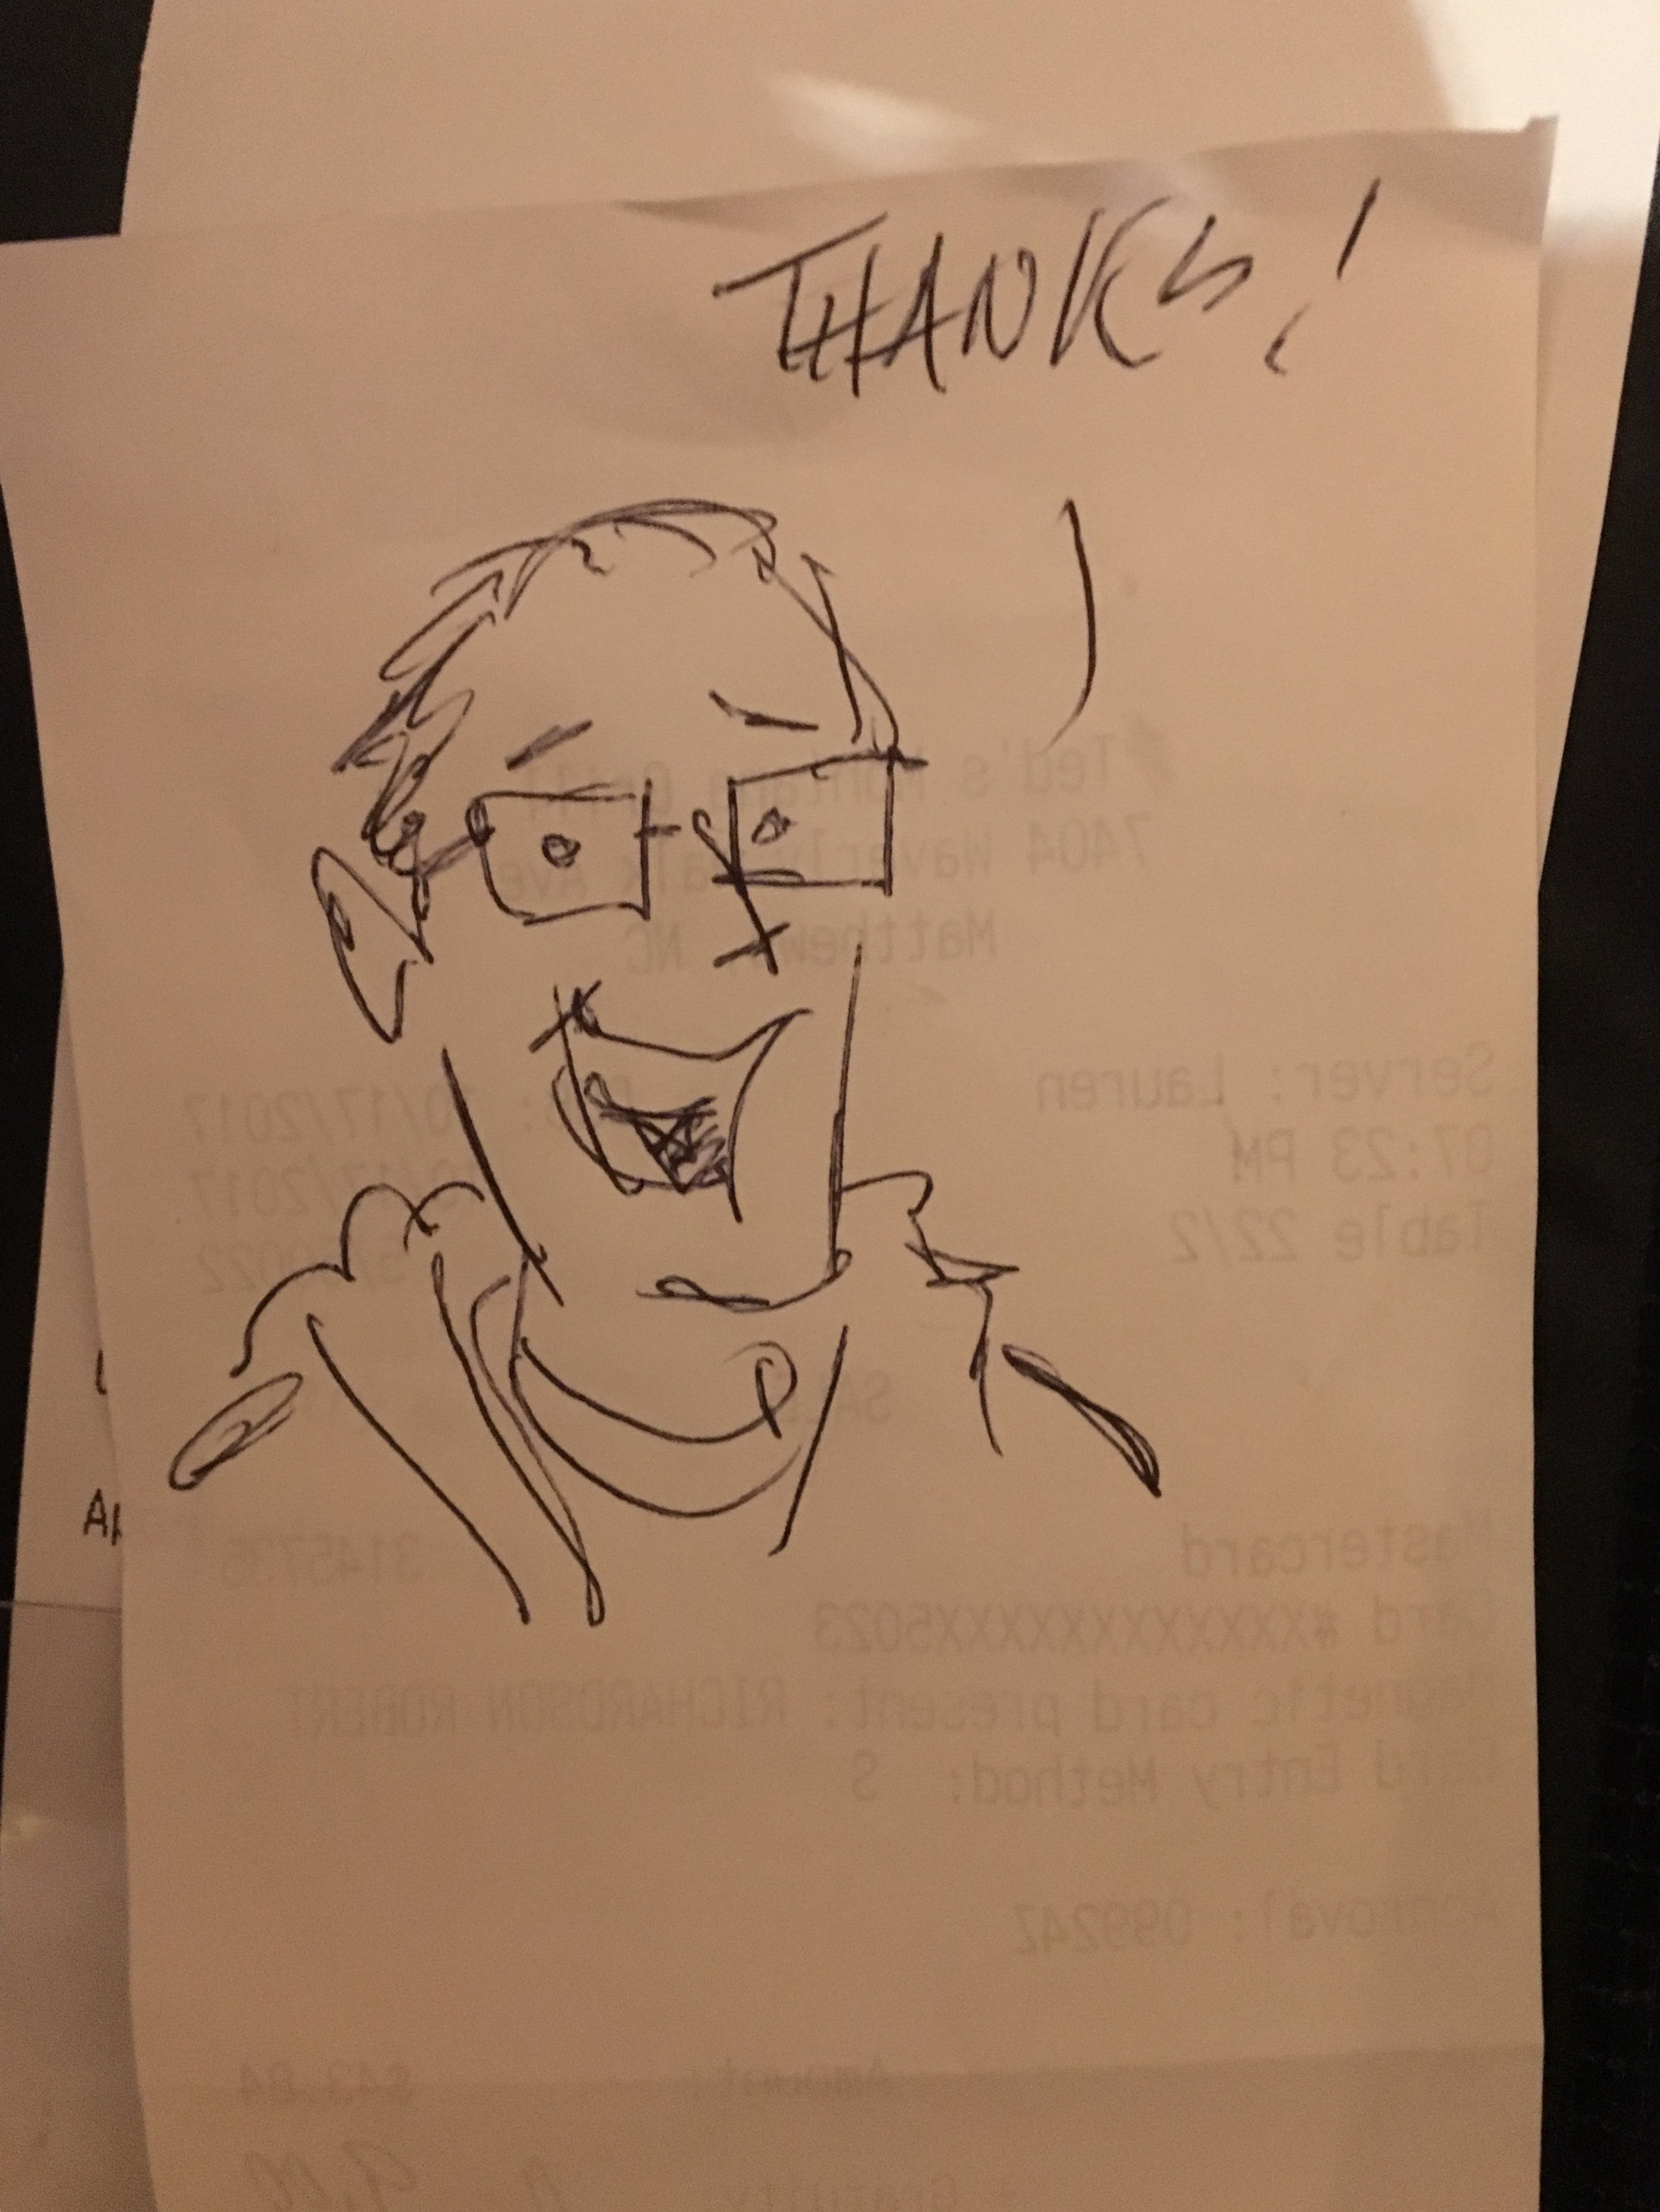 A guy drew this self portrait on the back of the receipt for me.